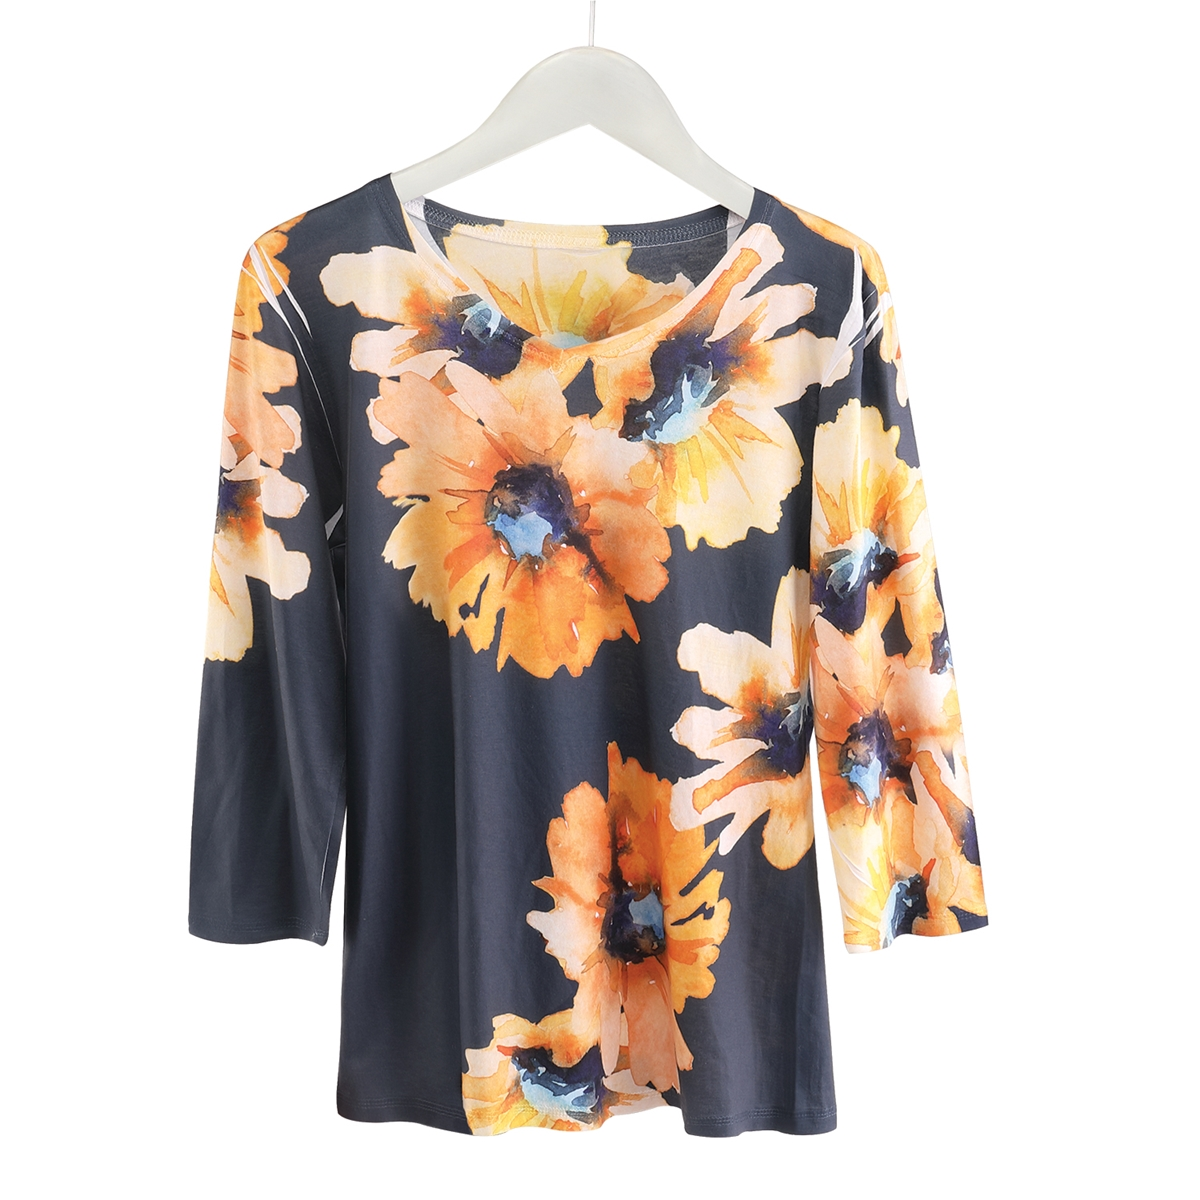 Floral Sublimated 3/4 Sleeve Tee